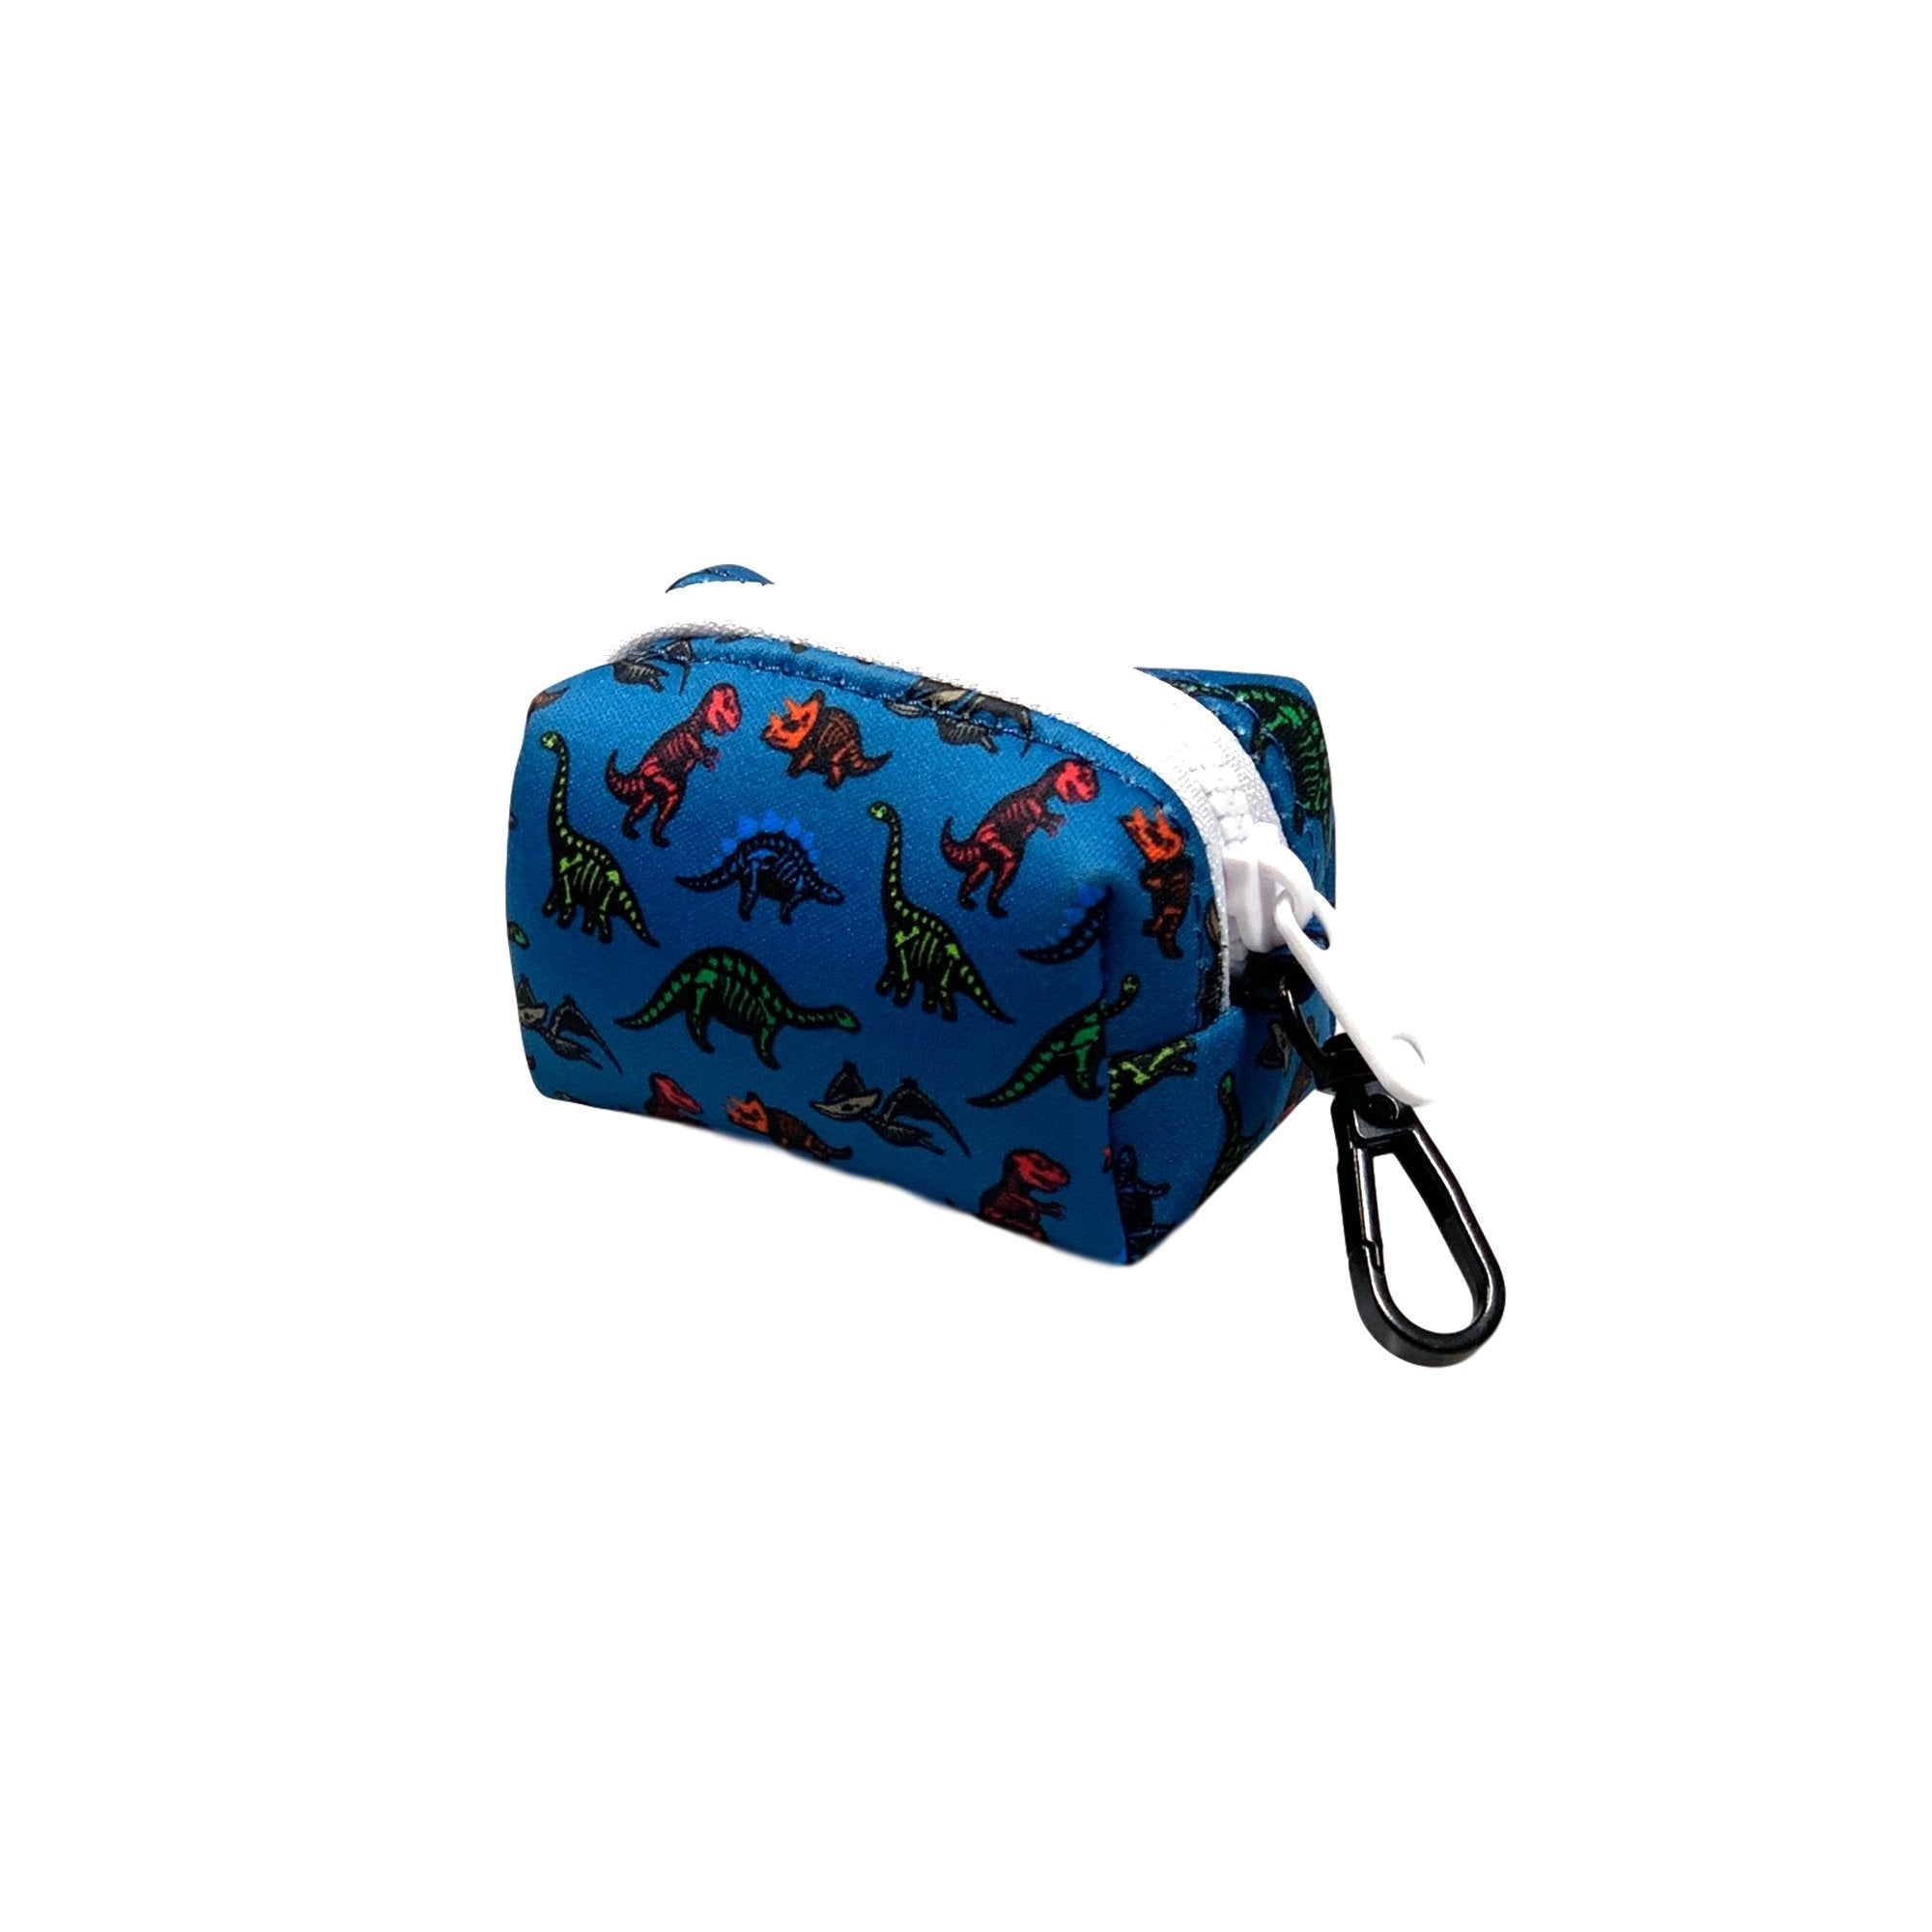 Dinosaur Poop Bag Holder - Beast & Buckle